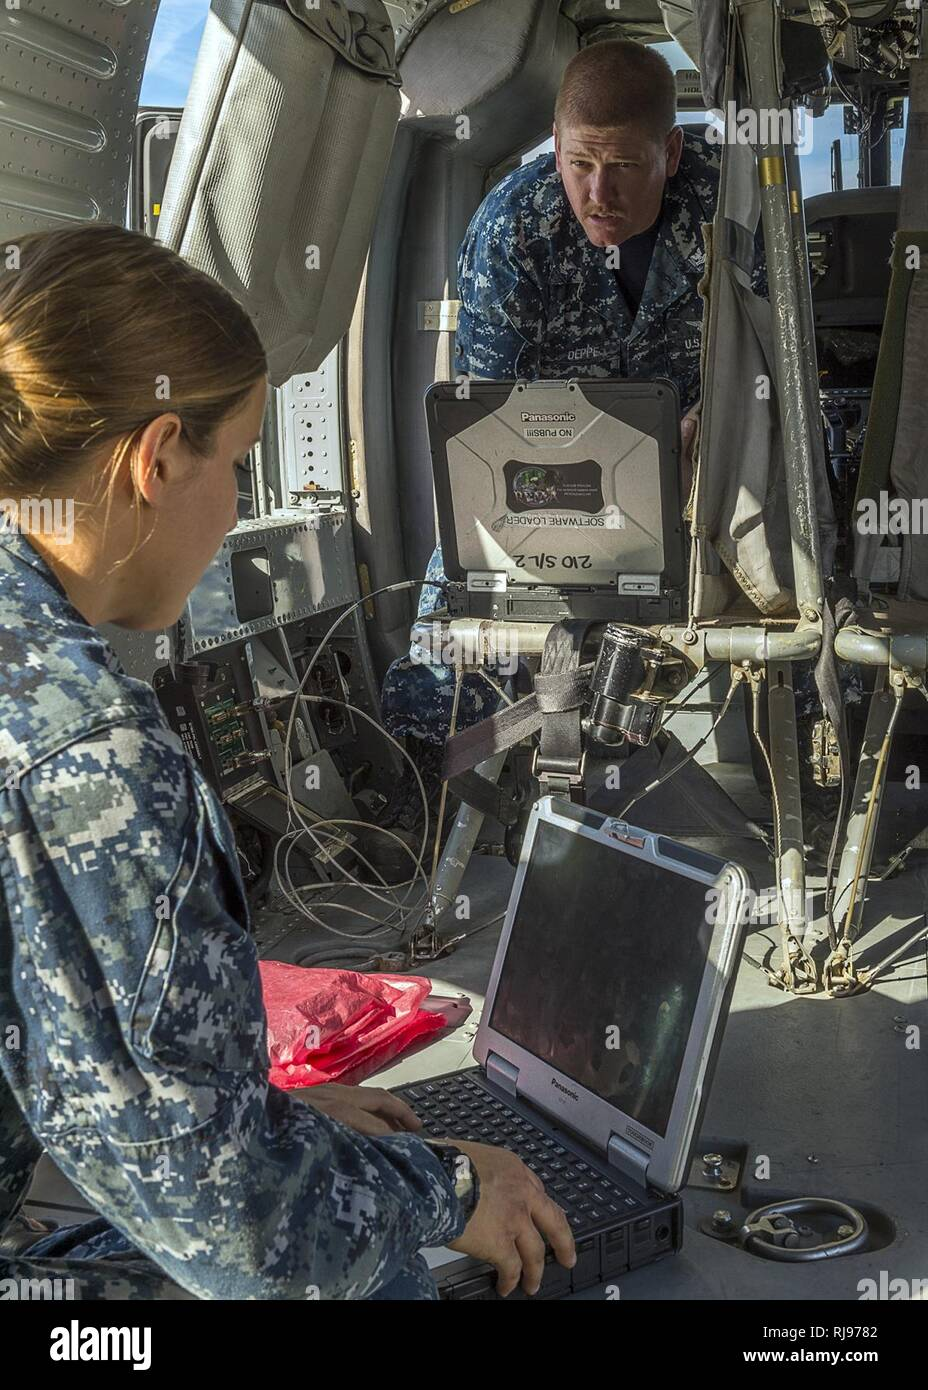 """Petty Officer 3rd Class Angela Bobst and Petty Officer 2nd Class Ryan Deppe assigned to Helicopter Sea Combat Squadron (HSC) 21 """"Blackjacks"""", review schematics on a toughbook laptop on a MH-60S Seahawk, while the helicopter is under regular maintenance check-ups on the flight line in San Diego, Nov. 4, 2016. HSC-21's mission is to provide all-weather, vertical lift, and combat-ready aircraft and crews to U.S. 7th and 5th Fleet areas of responsibility. U.S. Navy Combat Camera - Stock Image"""